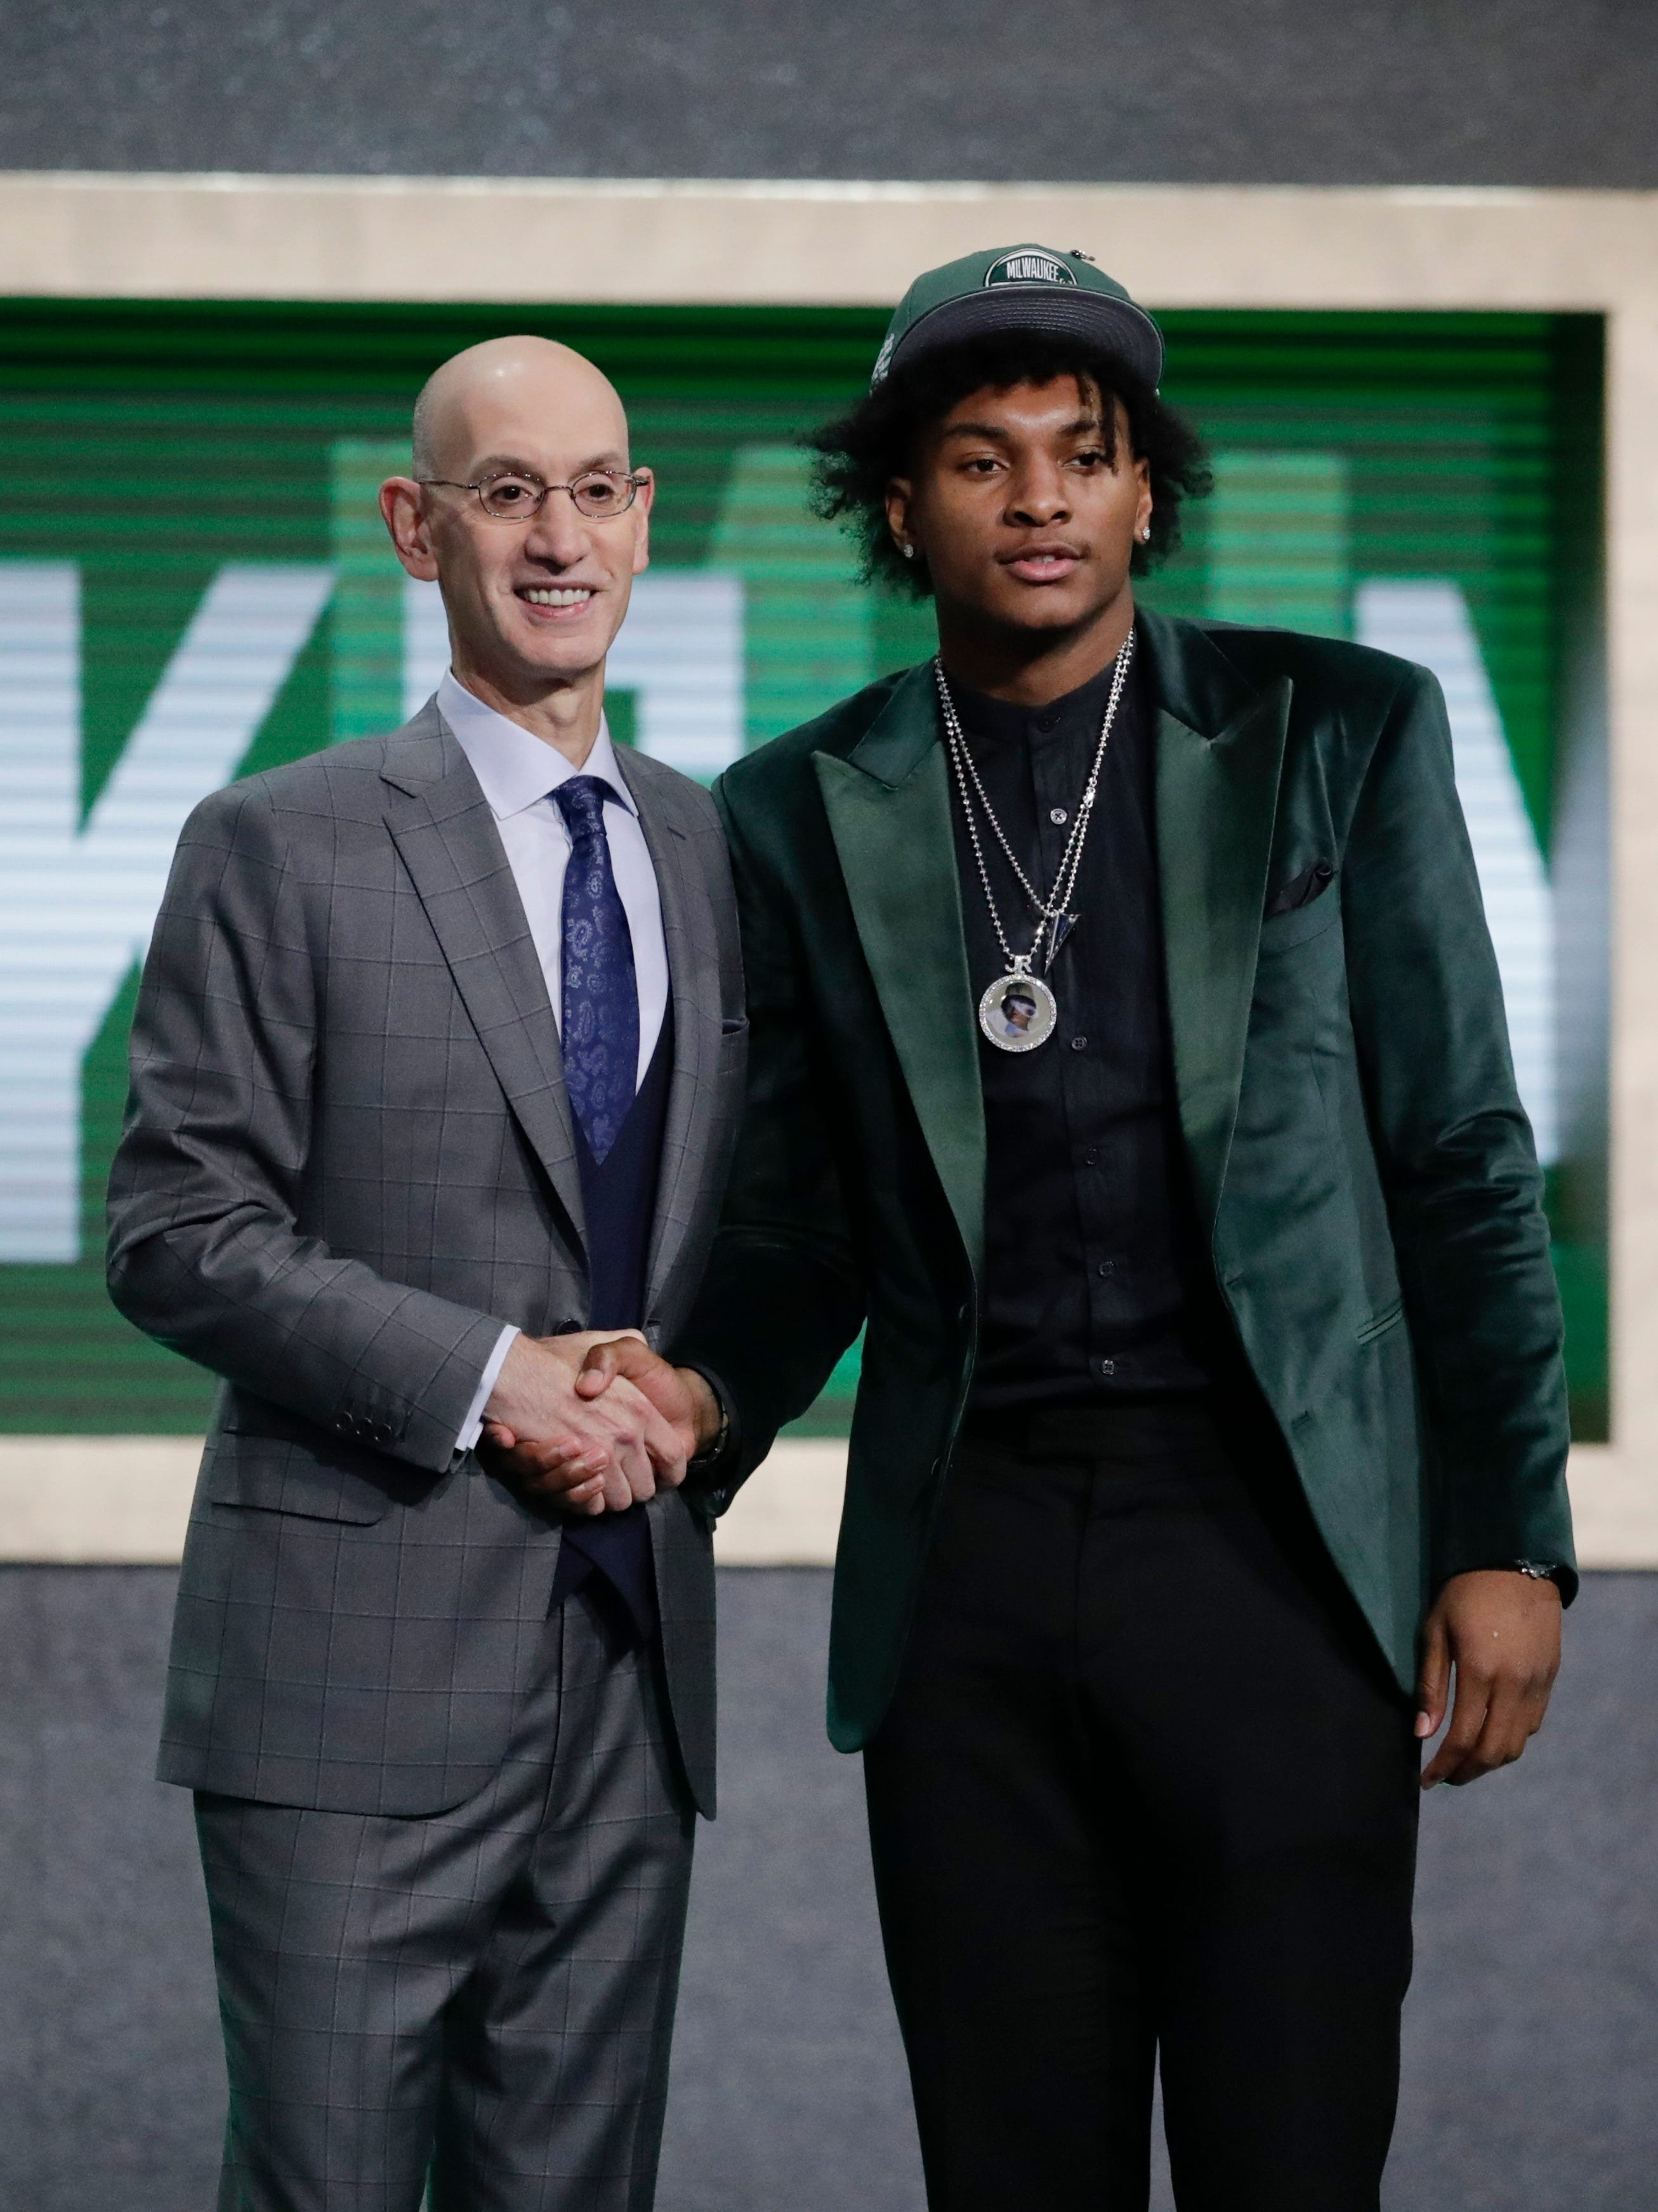 Bucks prepare for free agency after dealing sole draft pick thumbnail